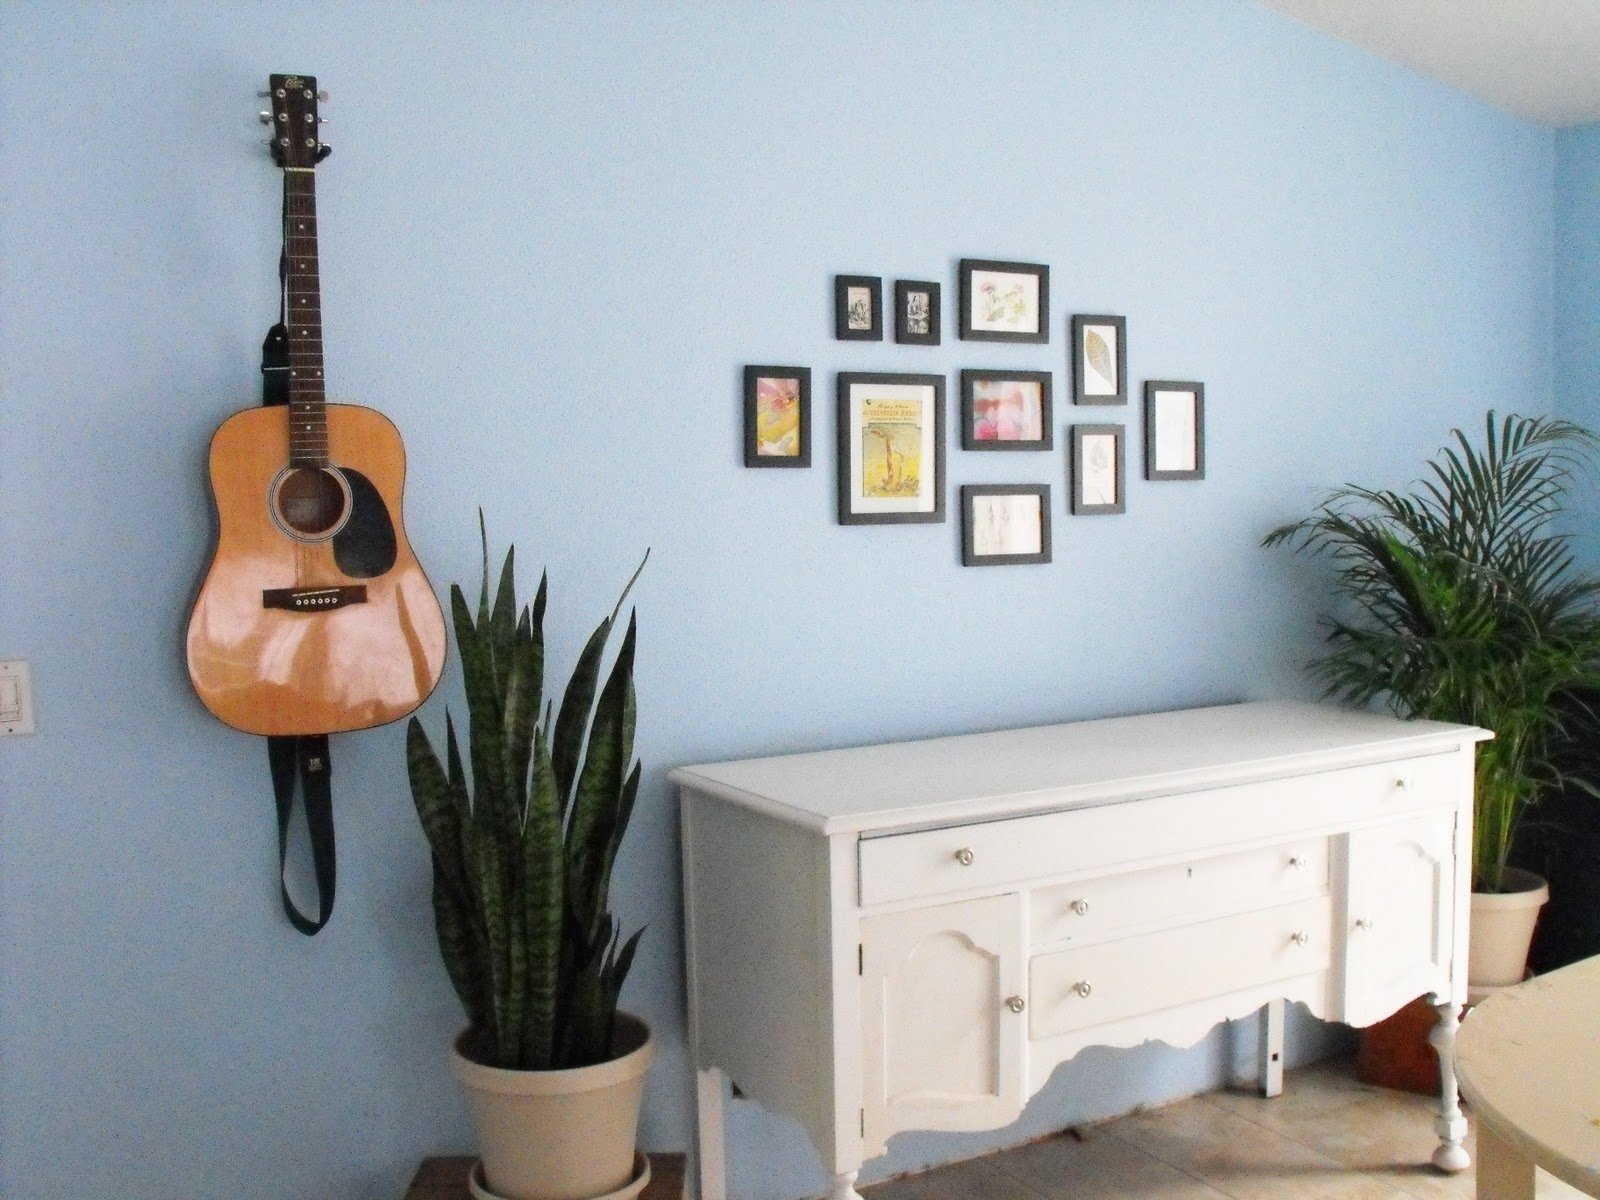 10 Attractive Ideas For Hanging Pictures On Walls 17 hanging pictures on wall ideas and how to hang pictures on a wall 2020